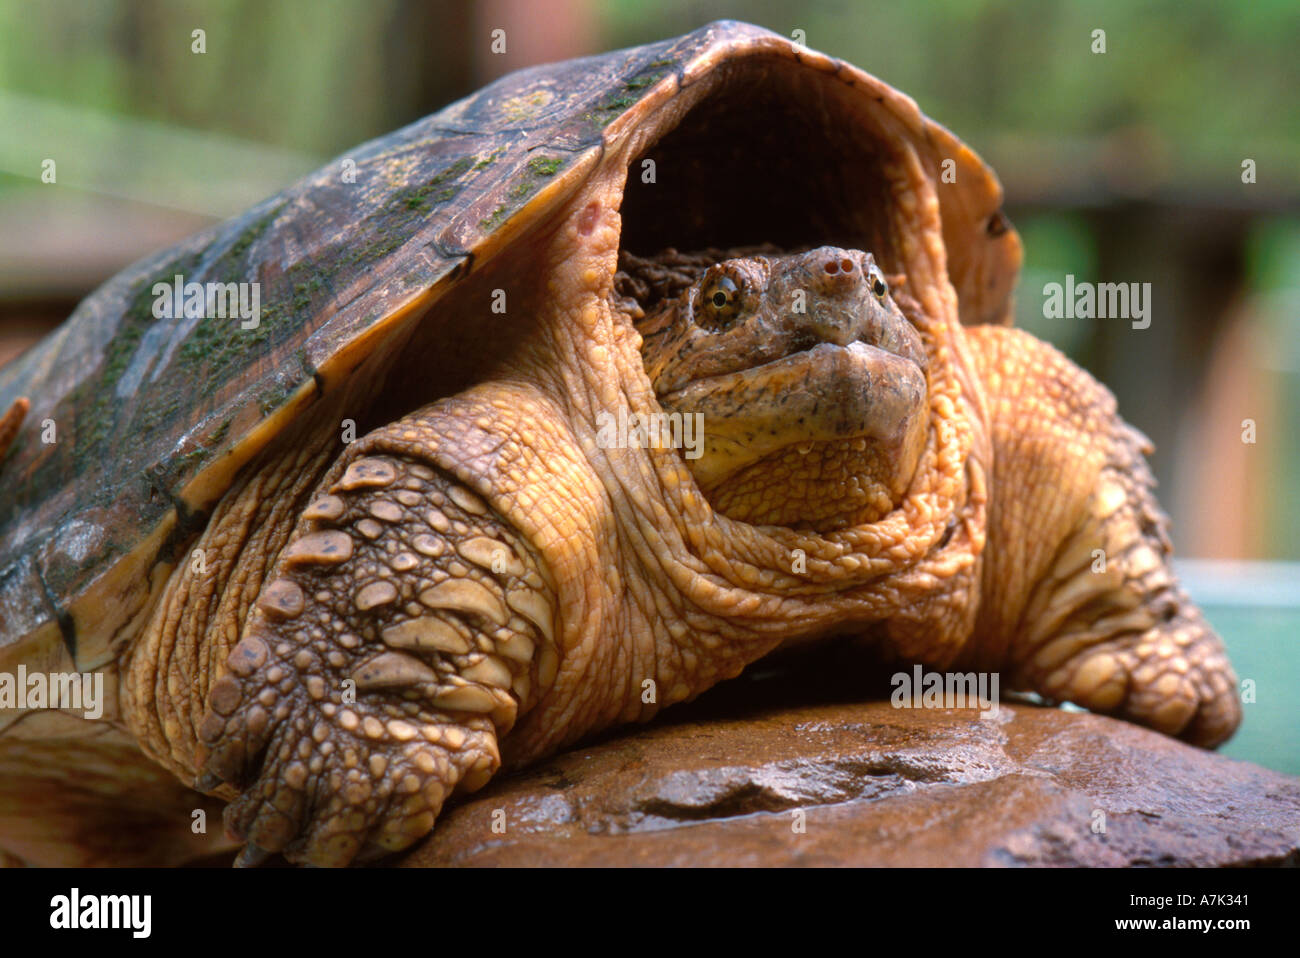 Close up of North American snapping turtle Stock Photo: 2192192 - Alamy